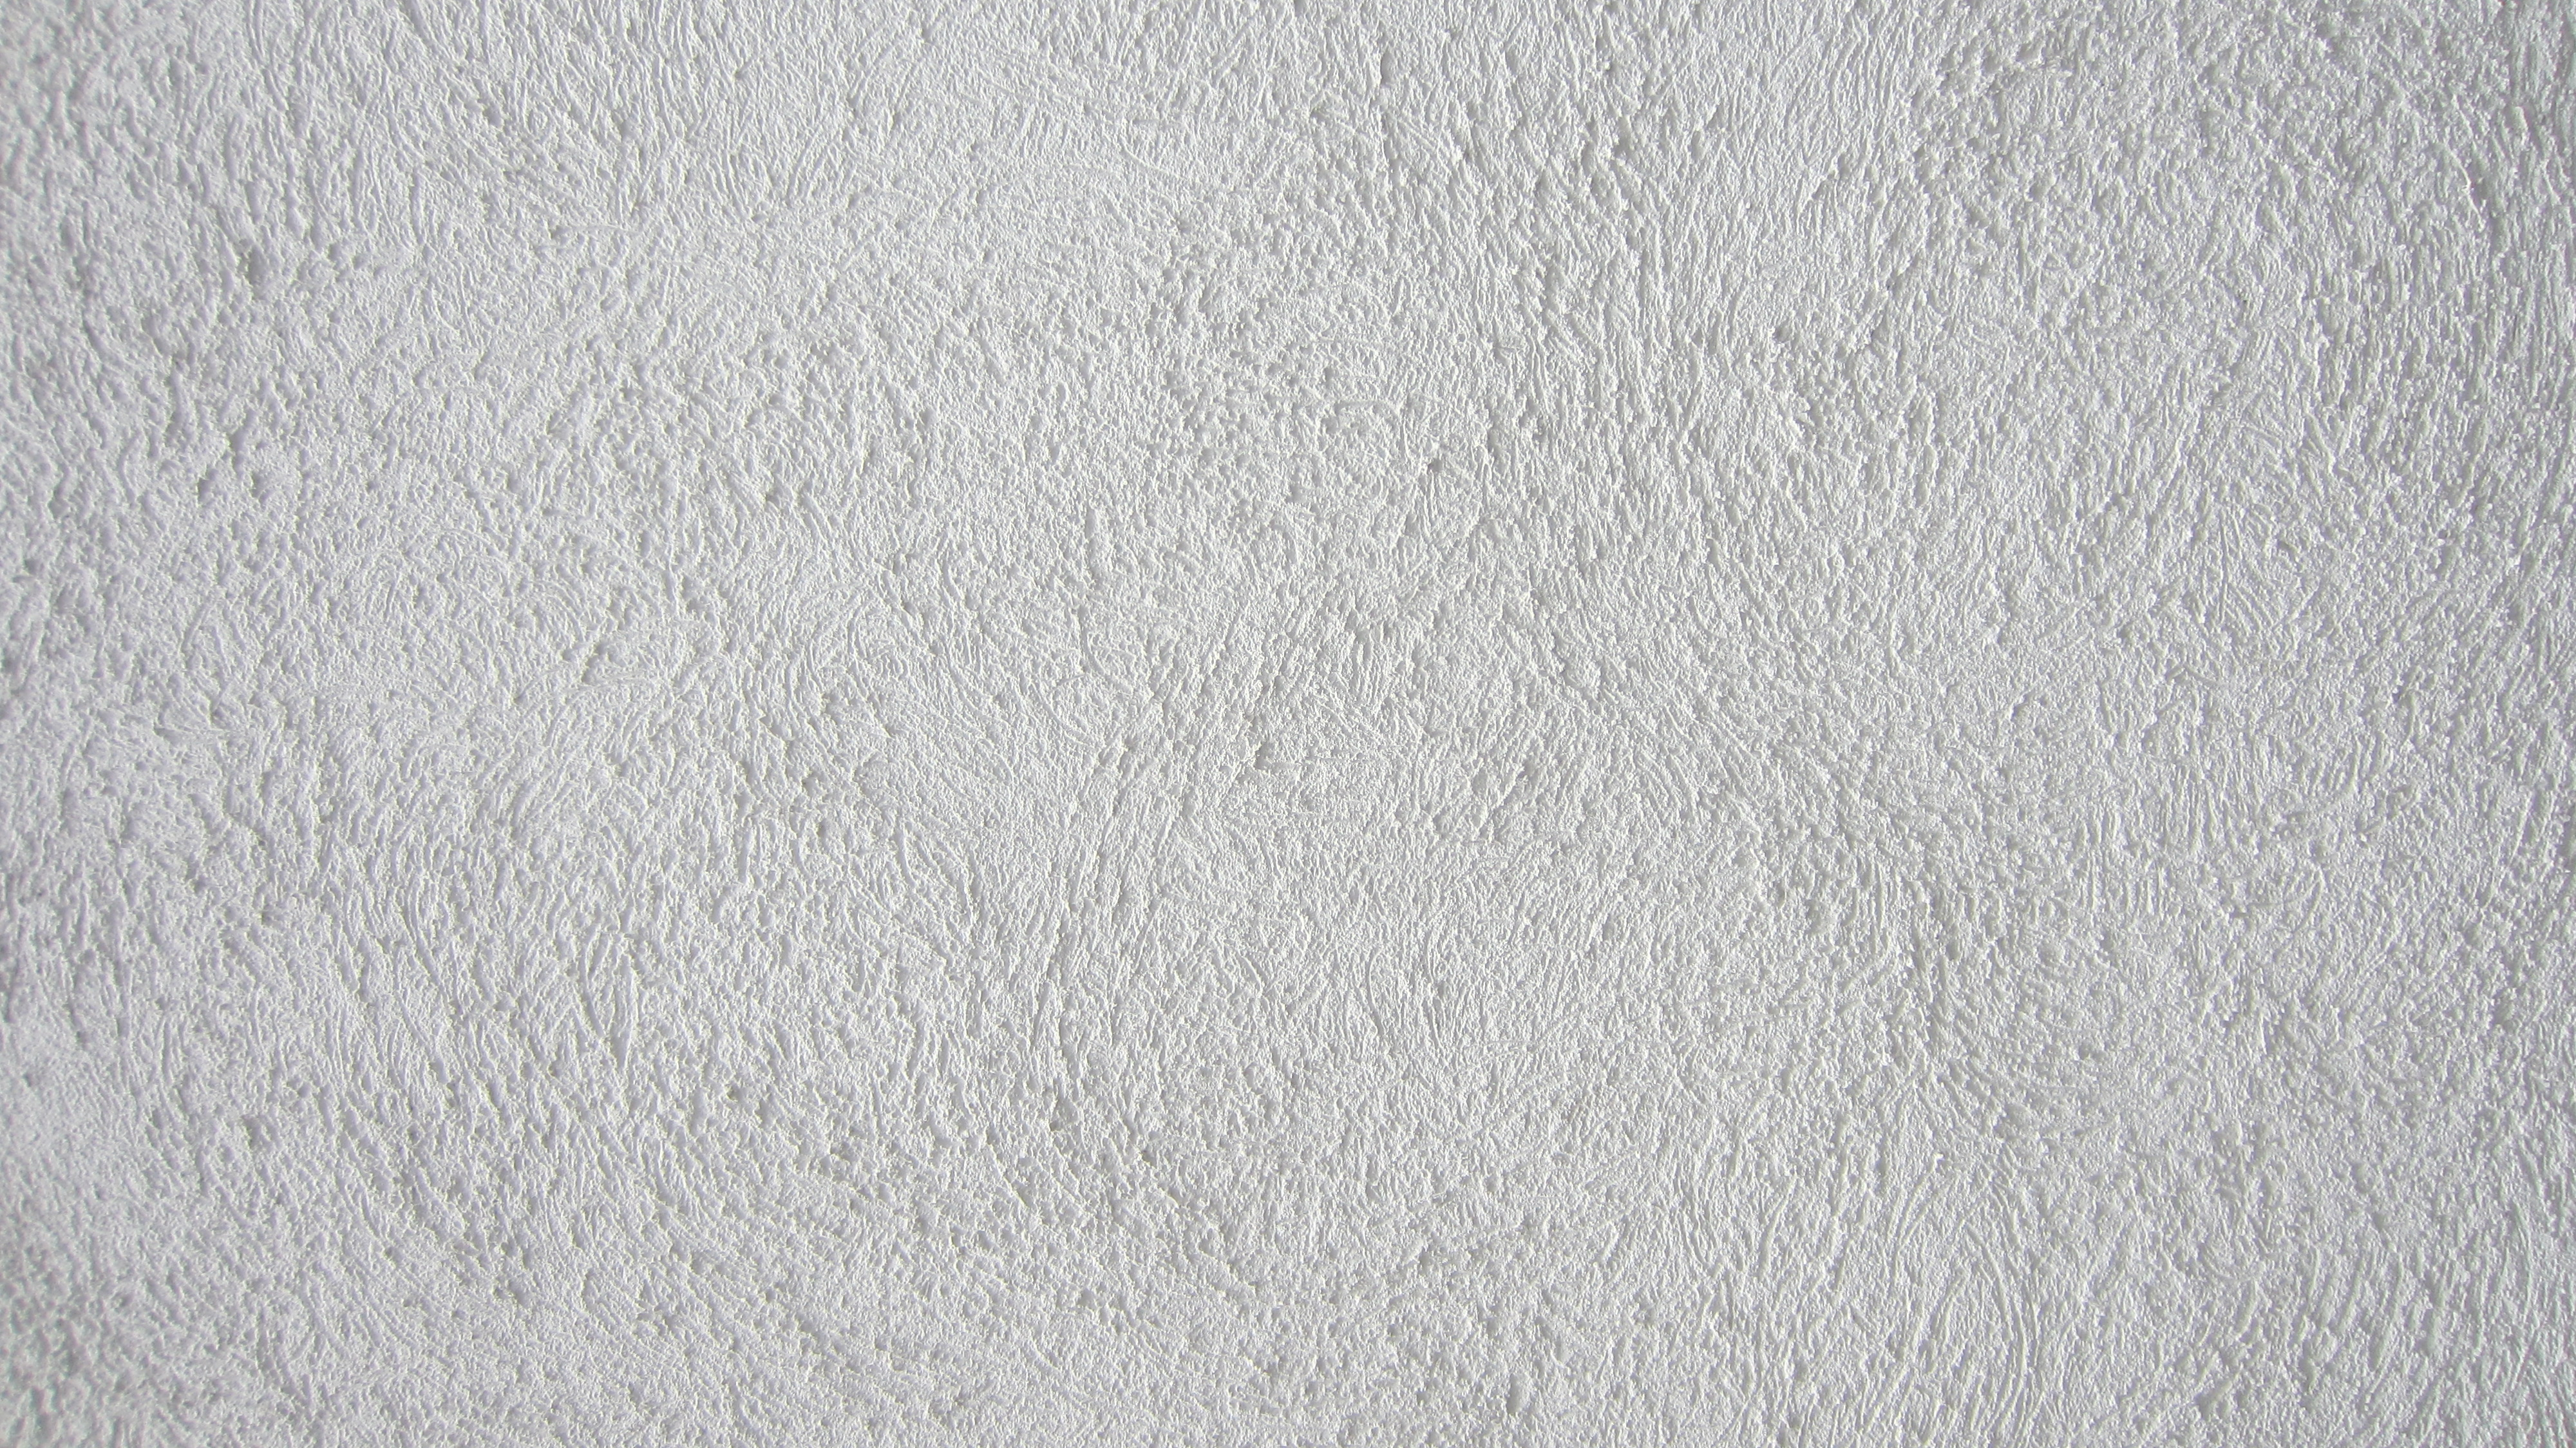 Plaster Wall Clipart.